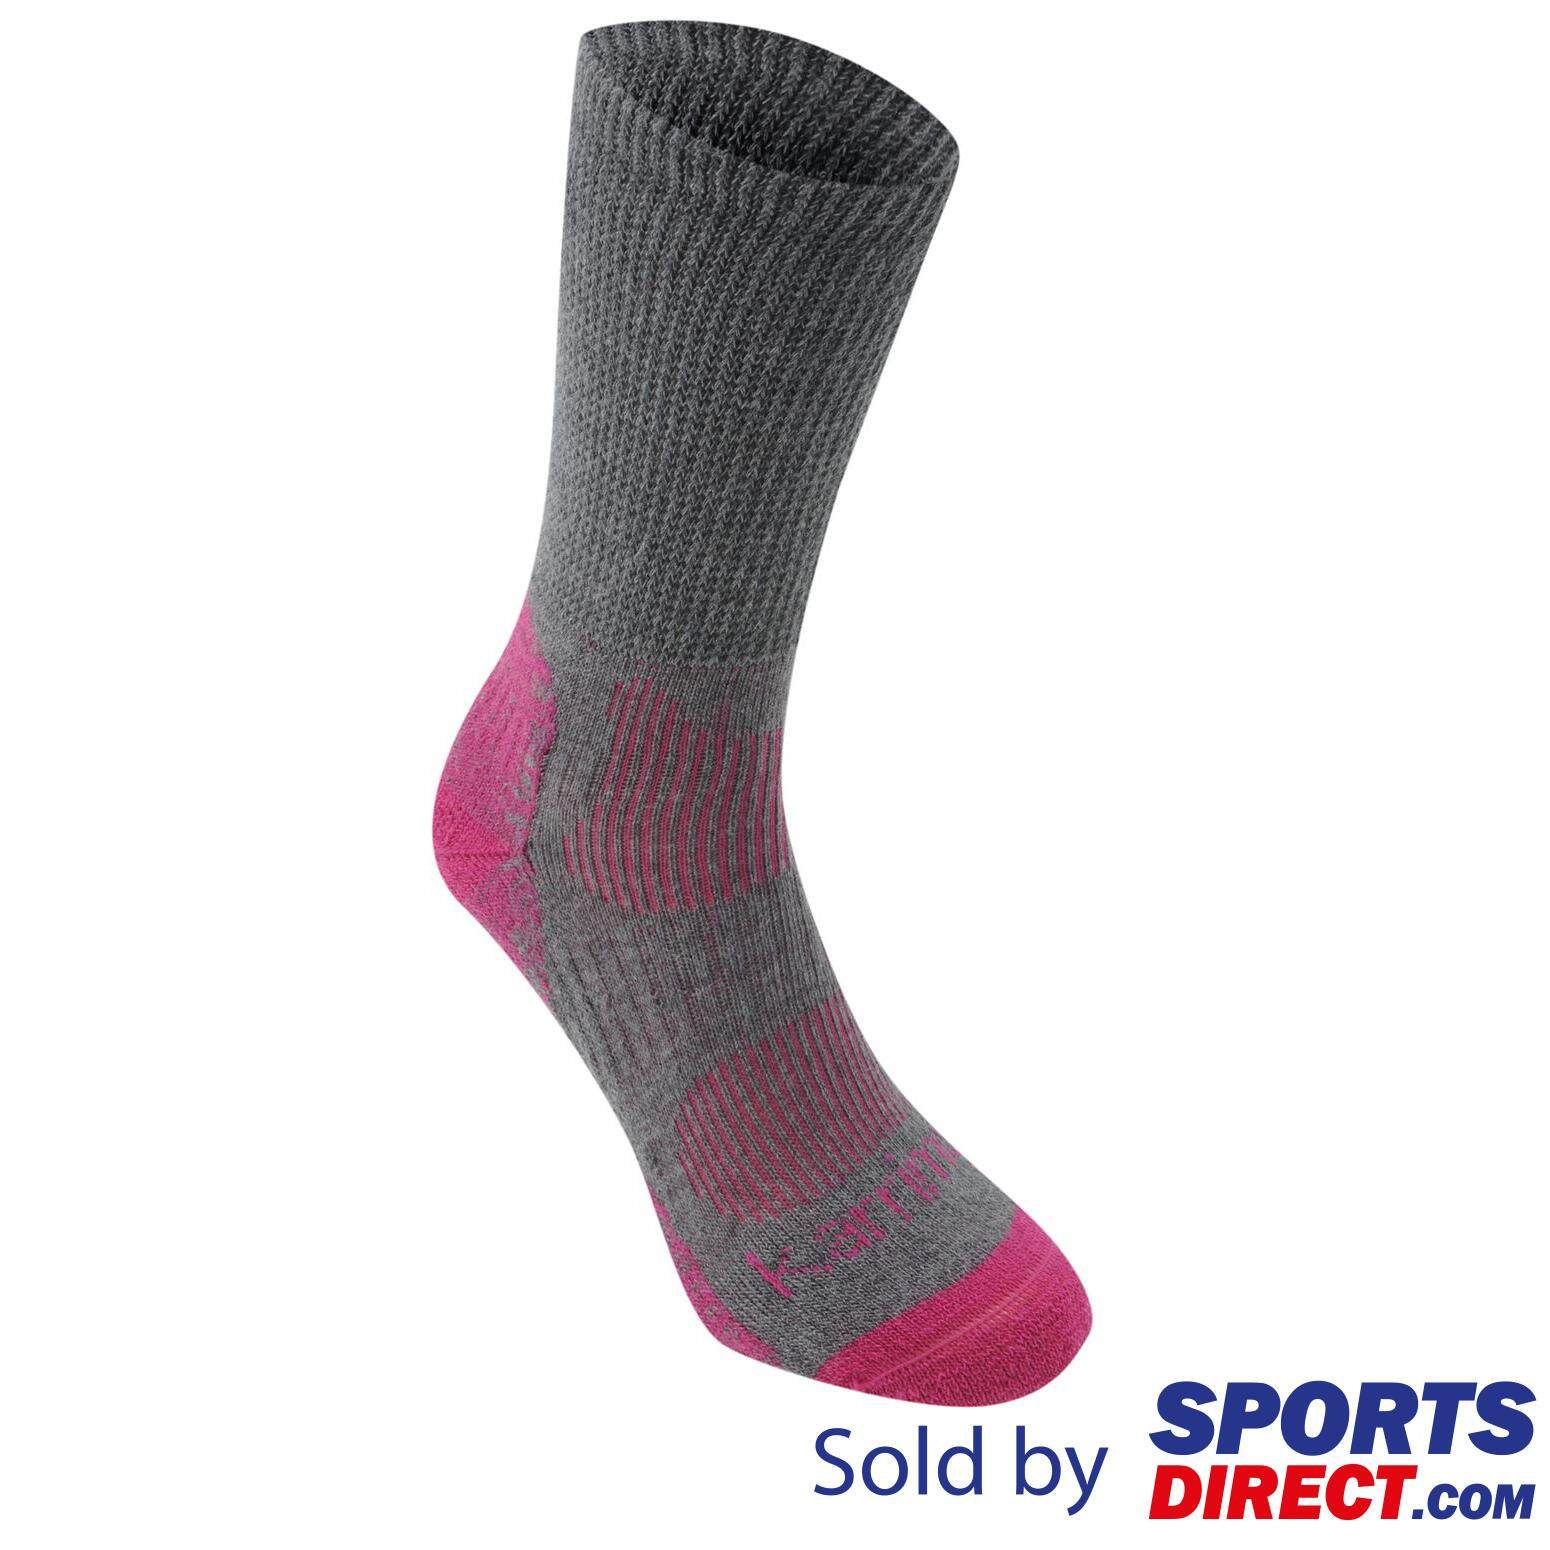 Karrimor Womens Merino Fibre Lightweight Walking Socks (grey/fuchsia) By Sports Direct Mst Sdn Bhd.